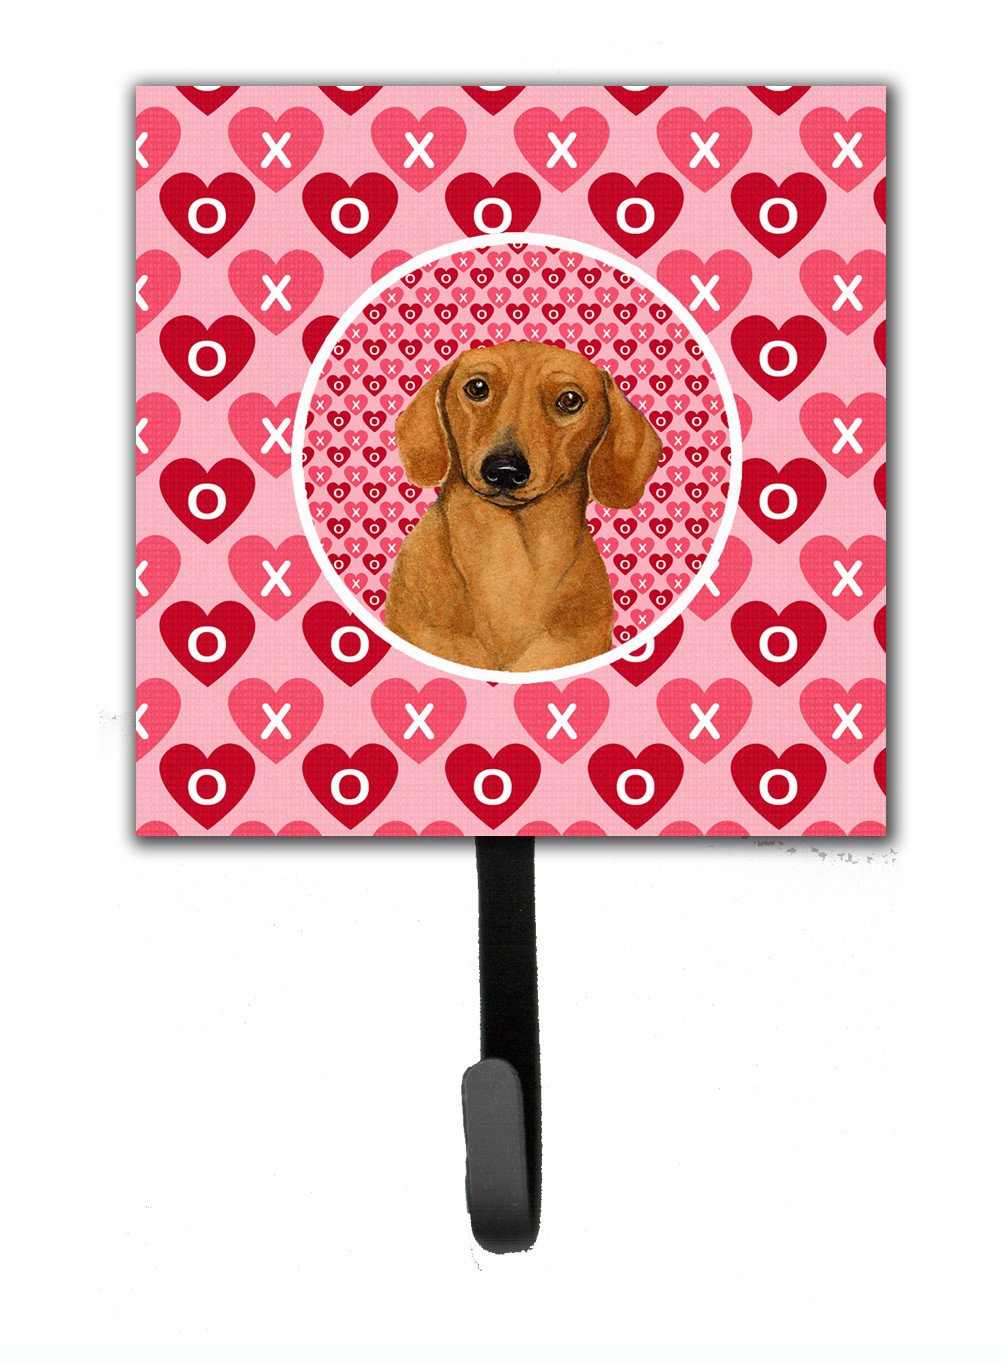 Dachshund Valentine's Love and Hearts Leash or Key Holder by Caroline's Treasures